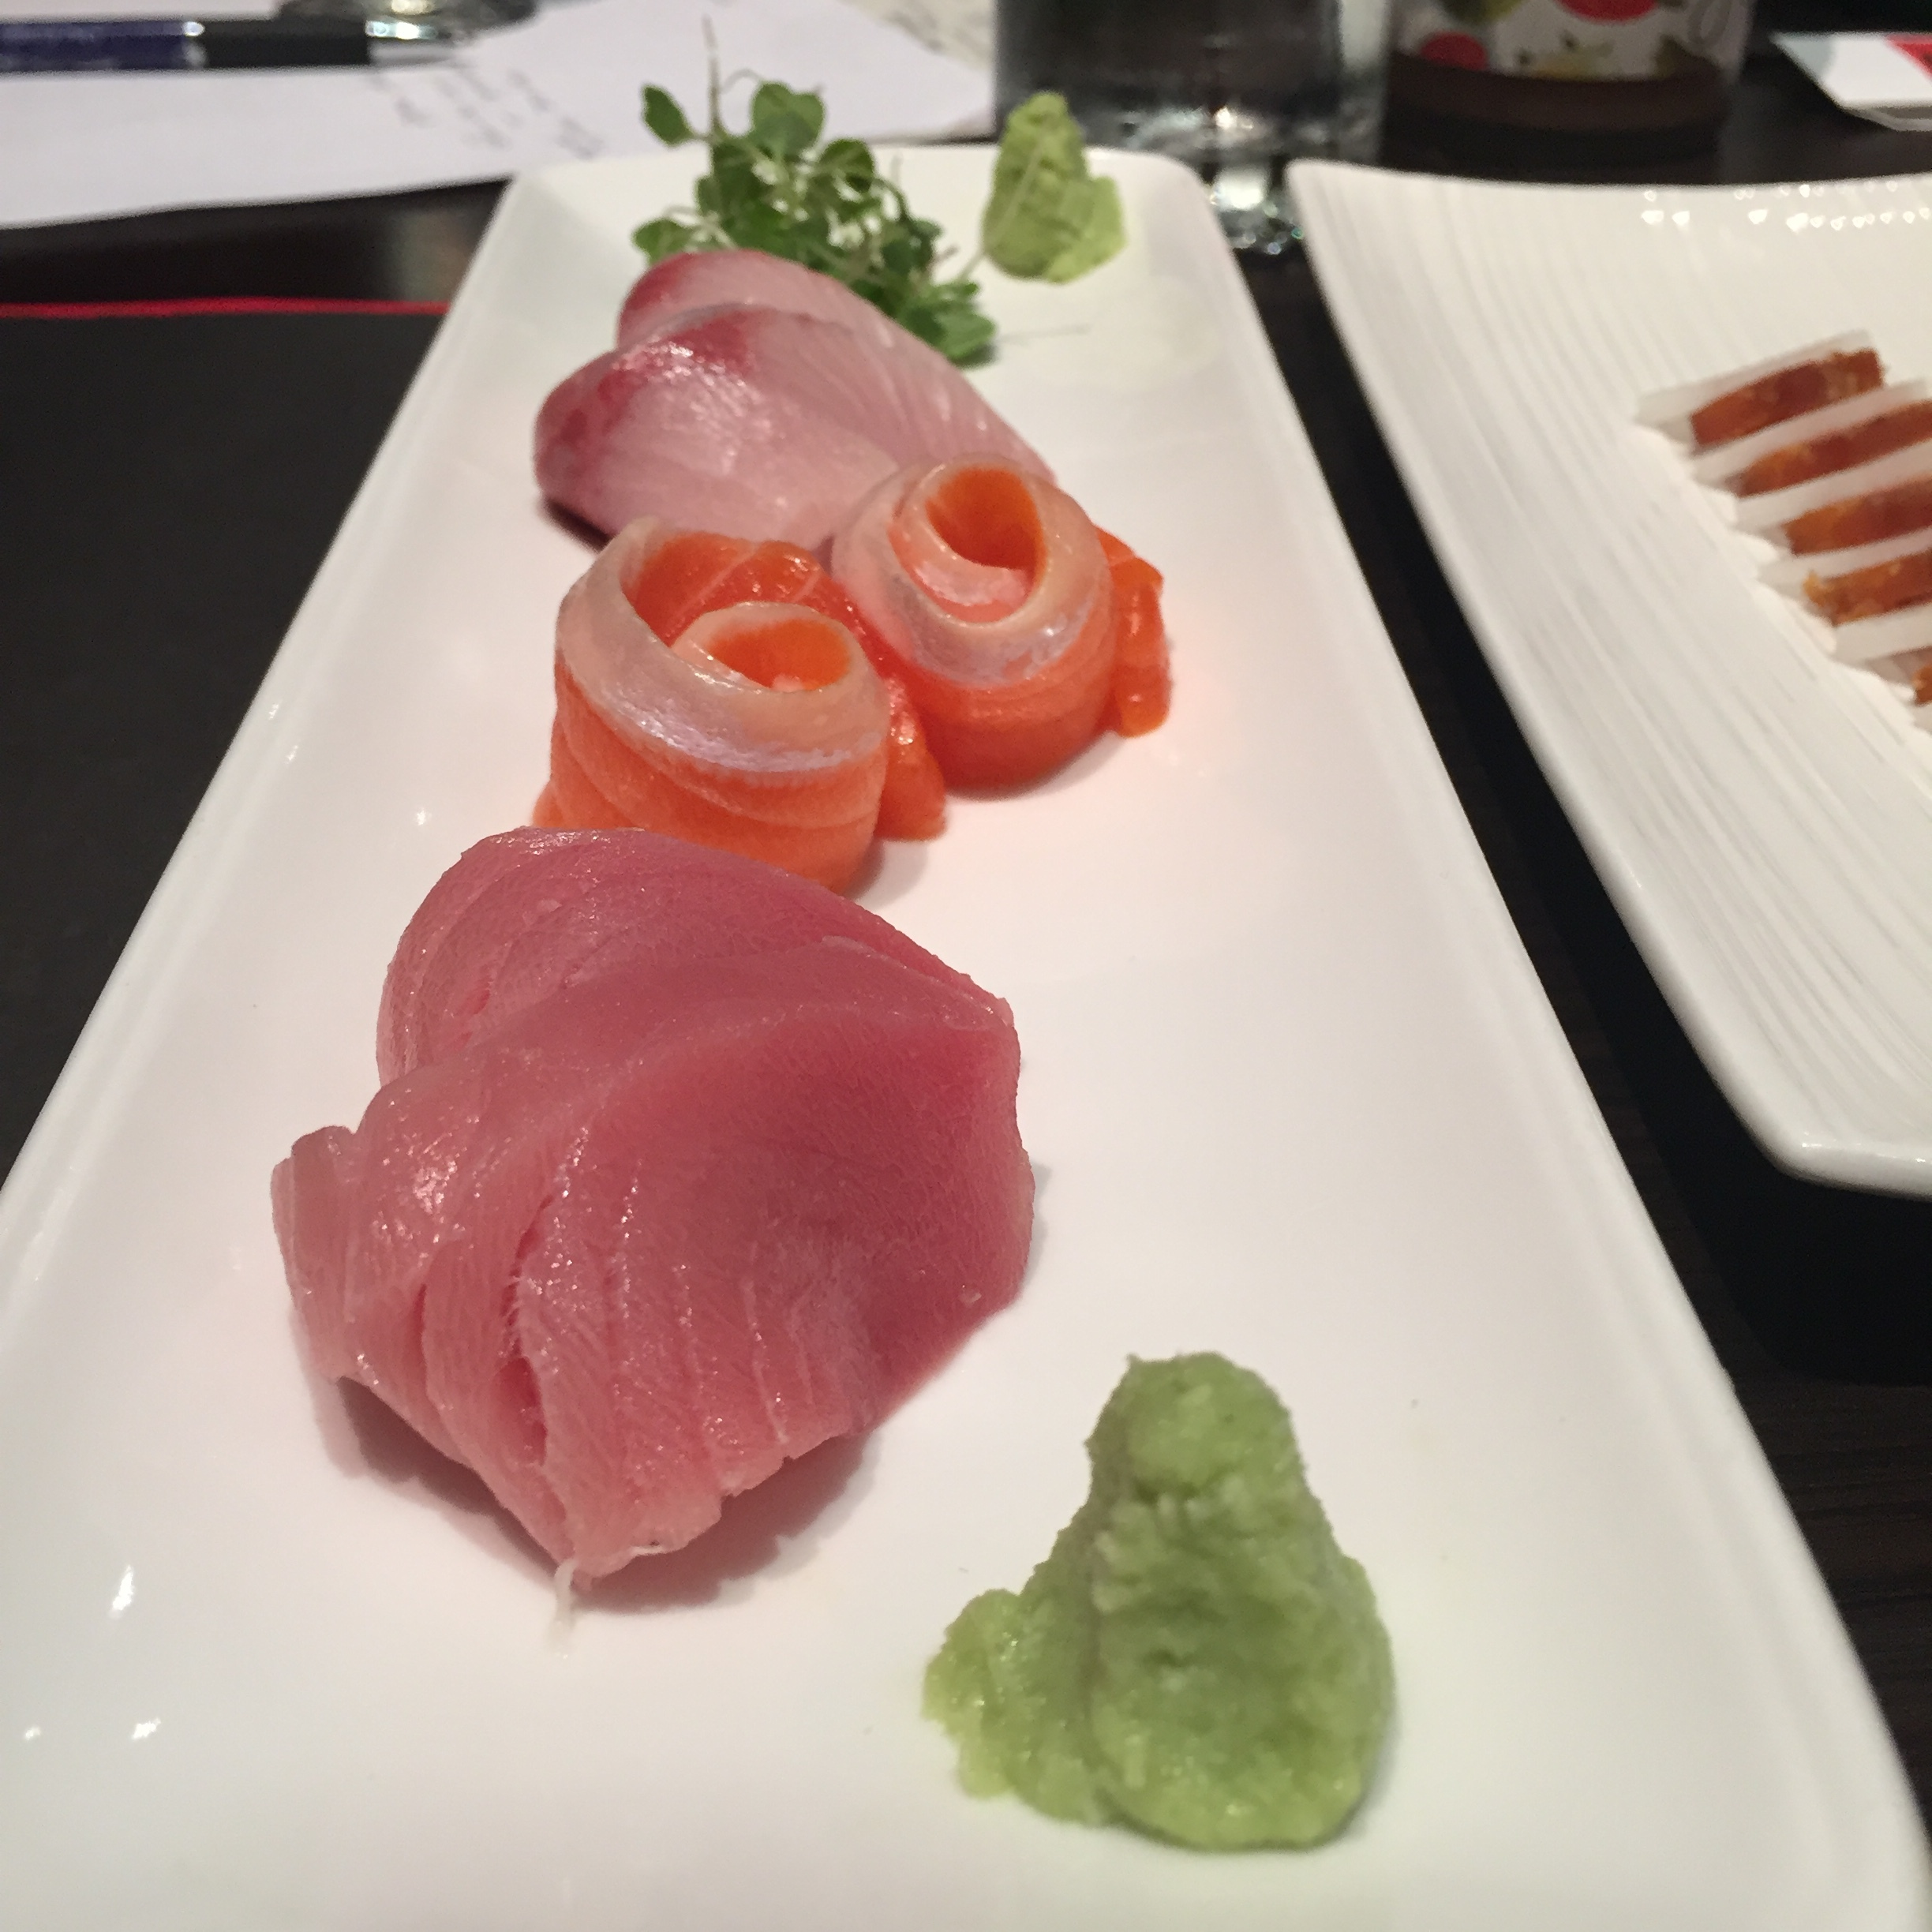 Stunning Otoro in front from Japan, Ocean Trout from Norway and Yellow Tail from Japan. Please note that the soy served at Nami is made in house from bonito, kelp, natural soy and Mirin.